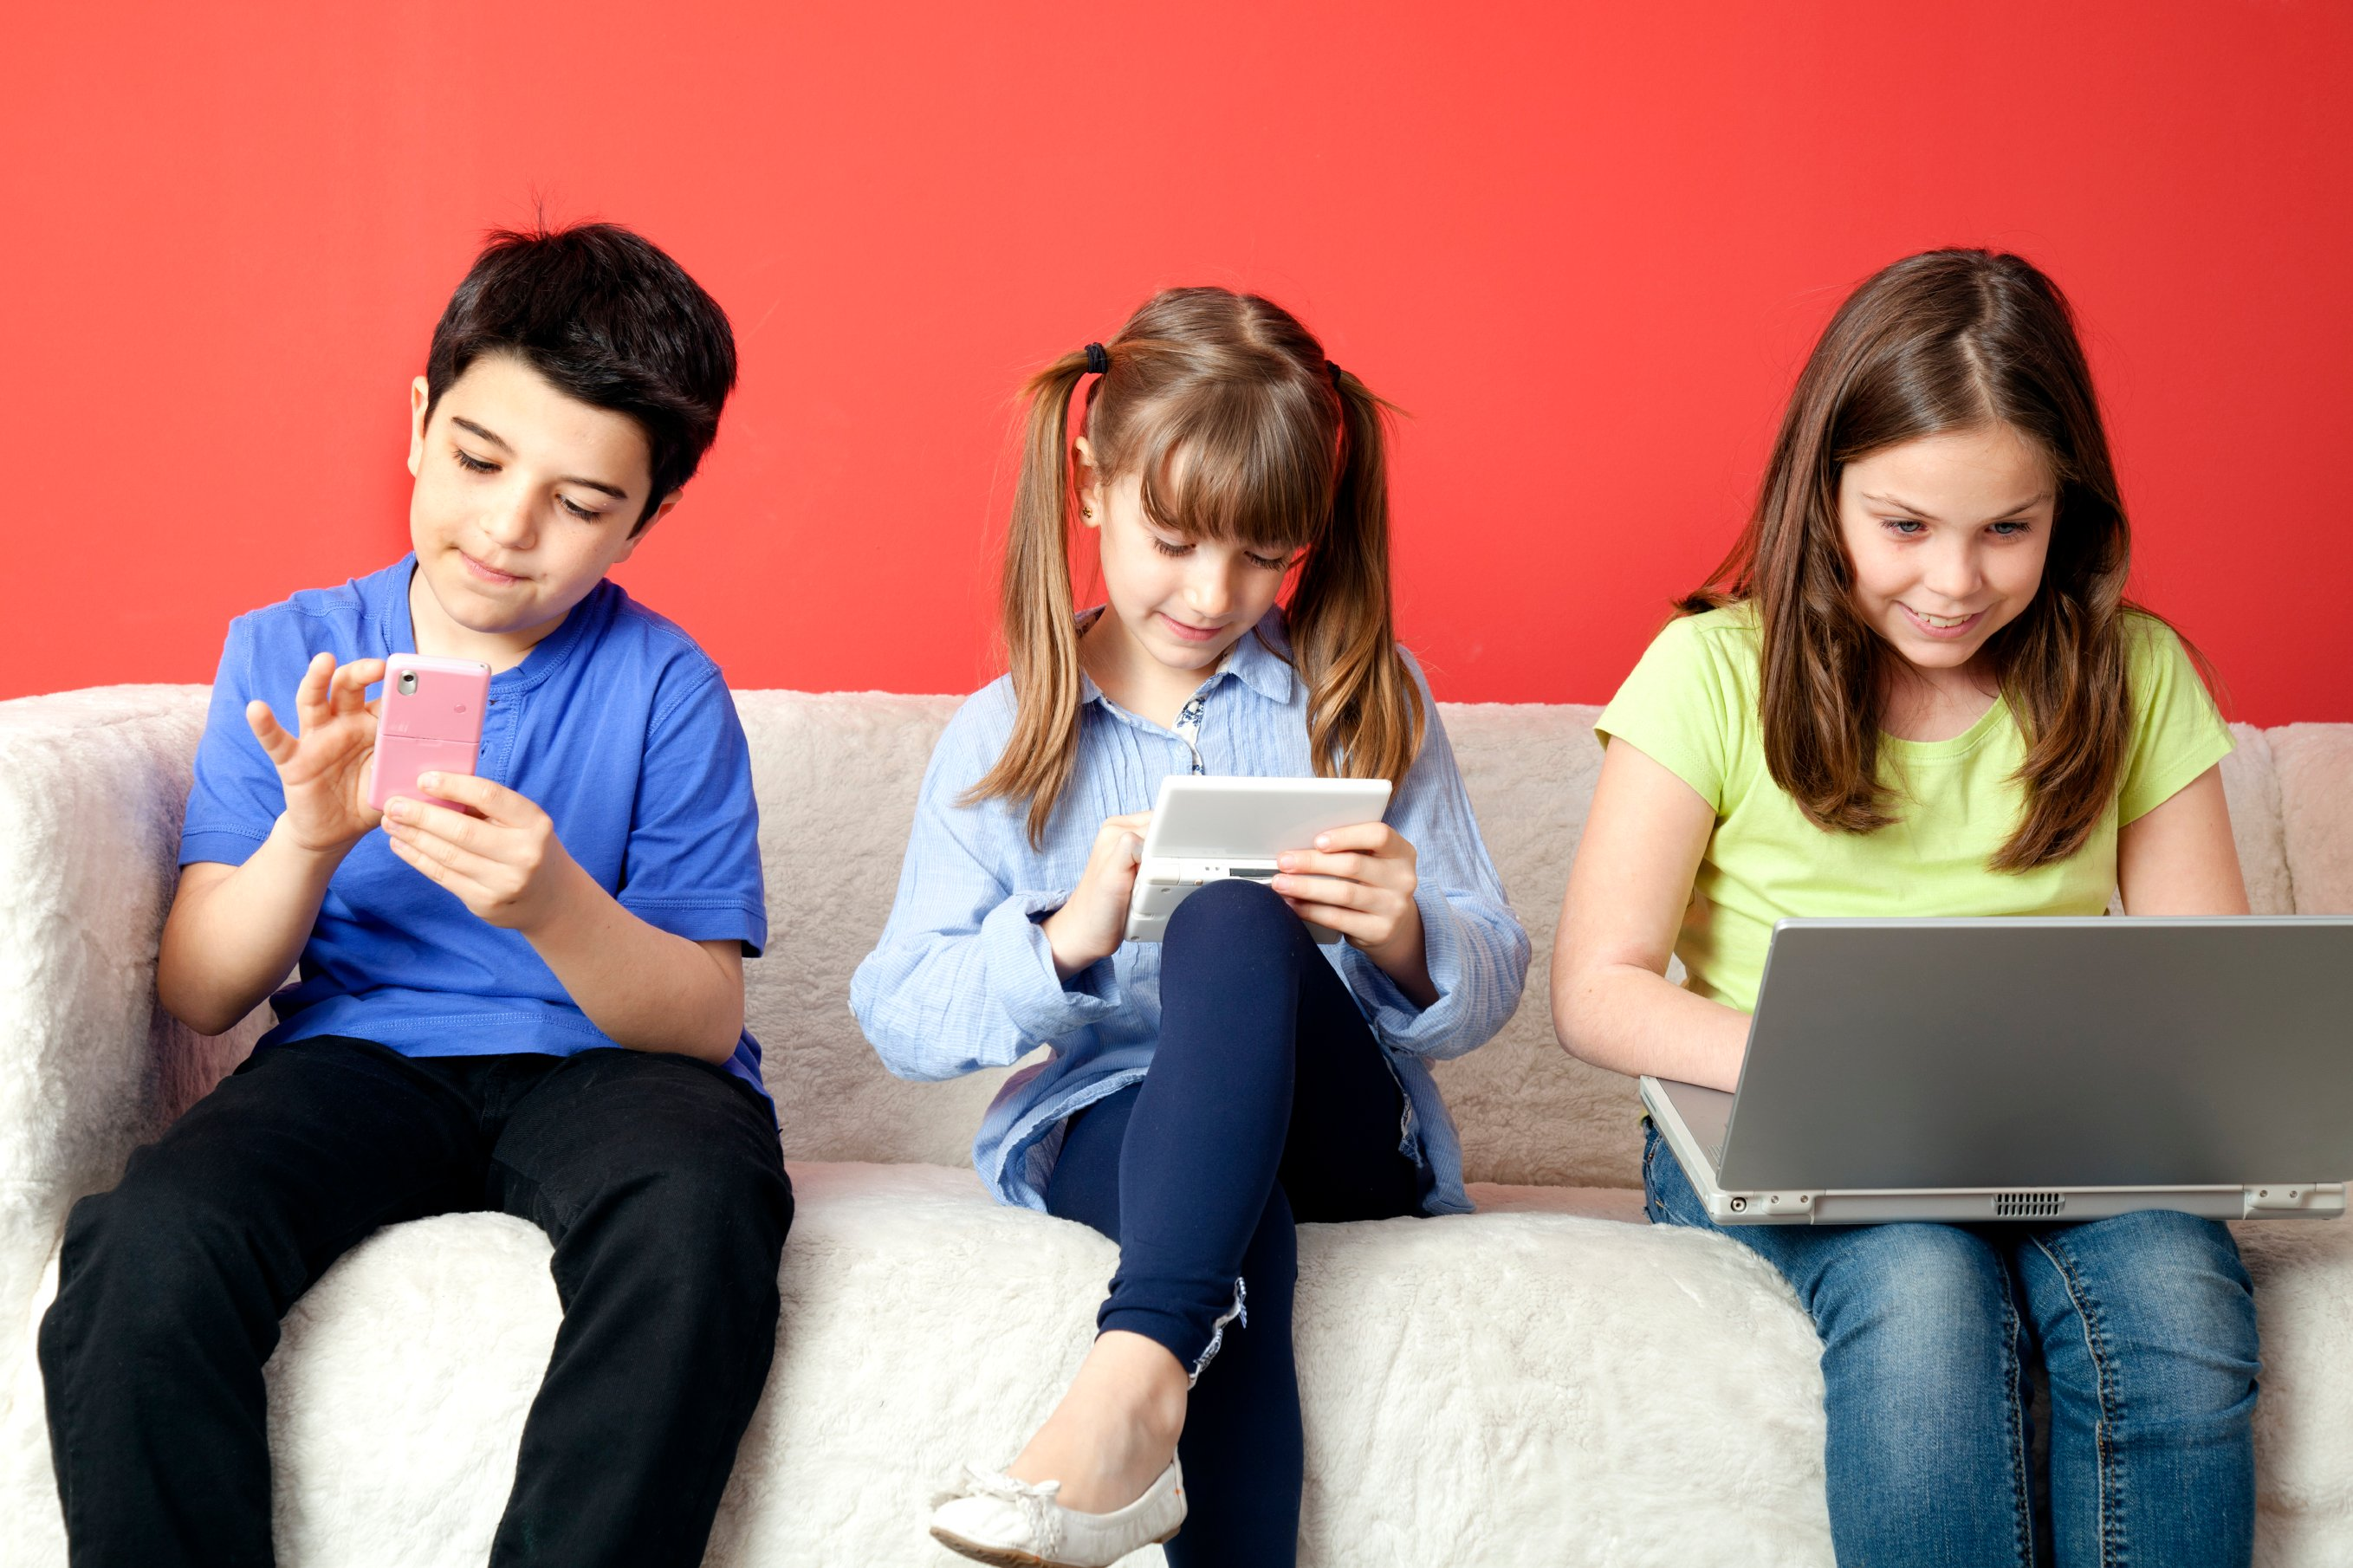 Children addicted to technology